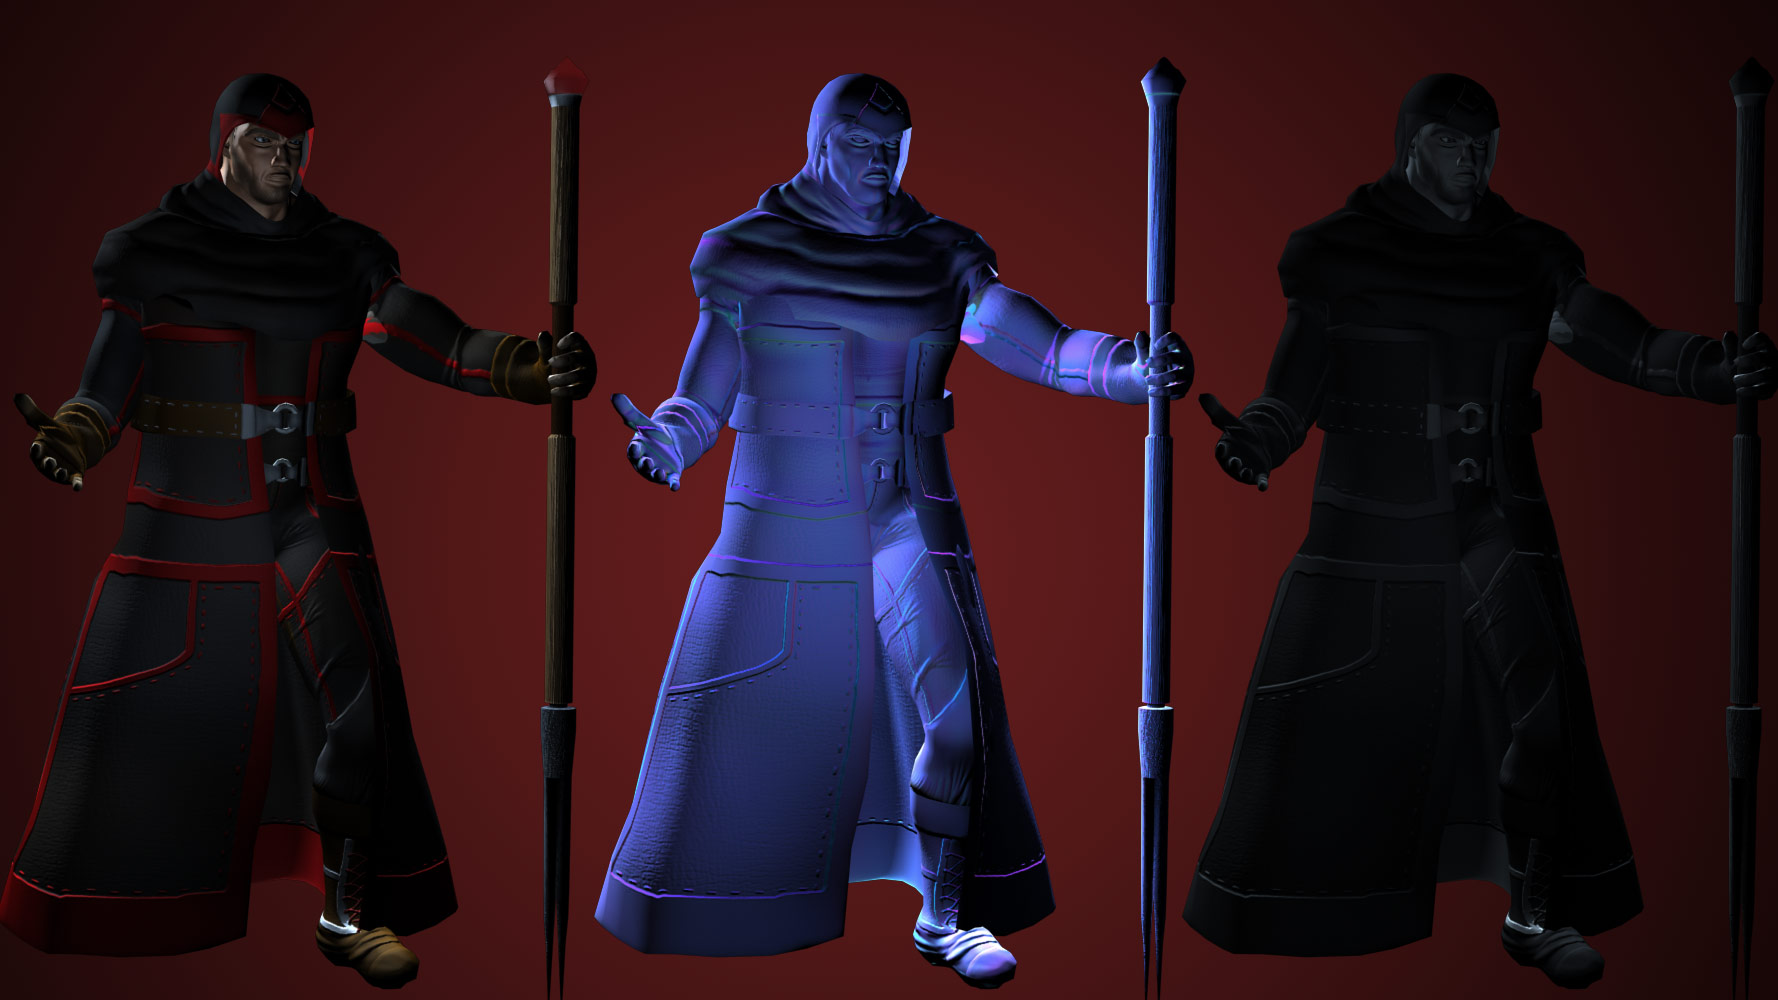 images/Mage Character Design